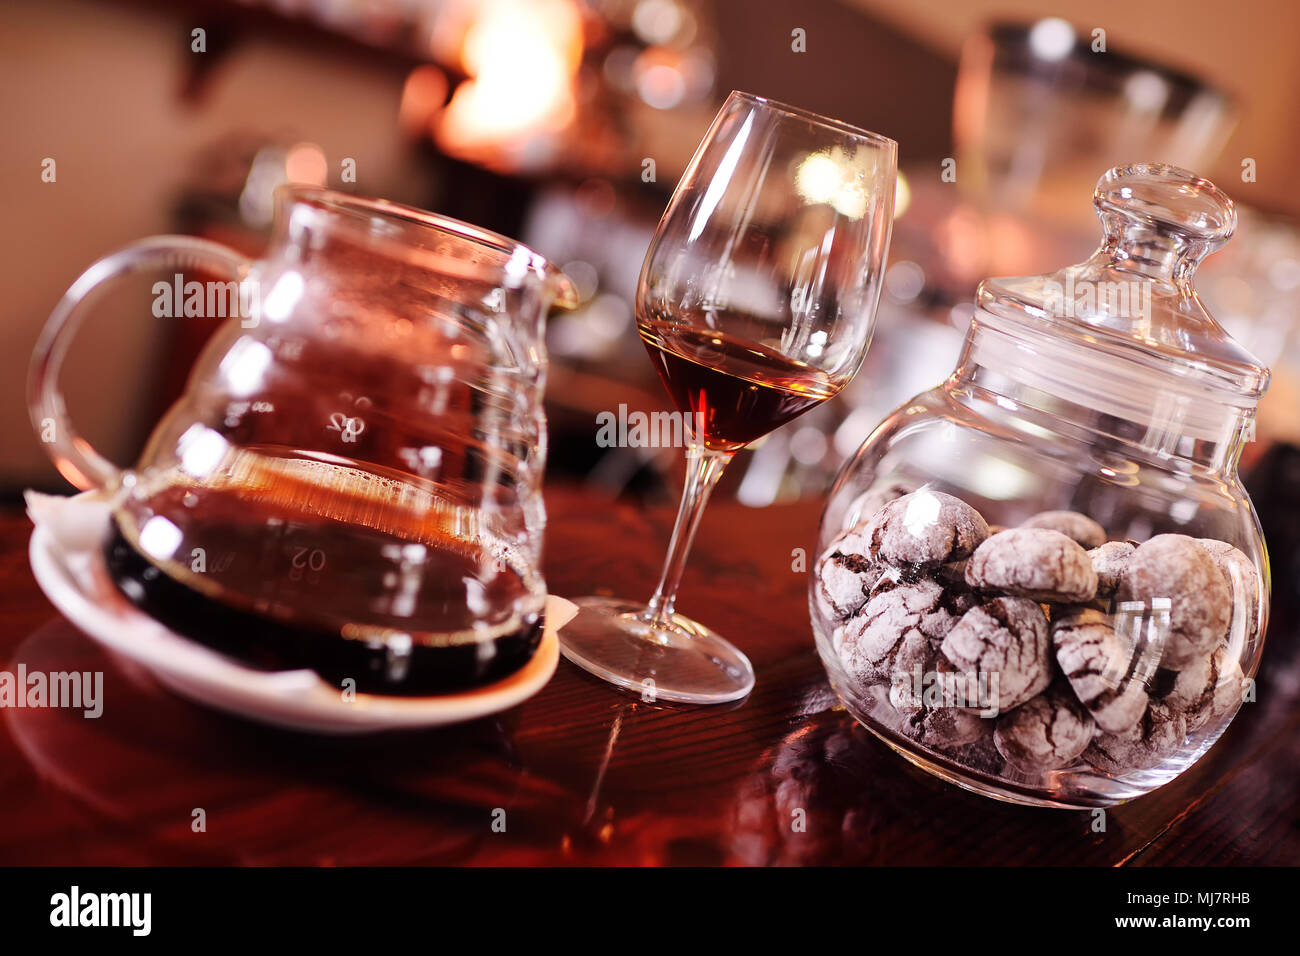 barista or coffee barman prepares coffee by an alternative method of brewing - pour over - Stock Image